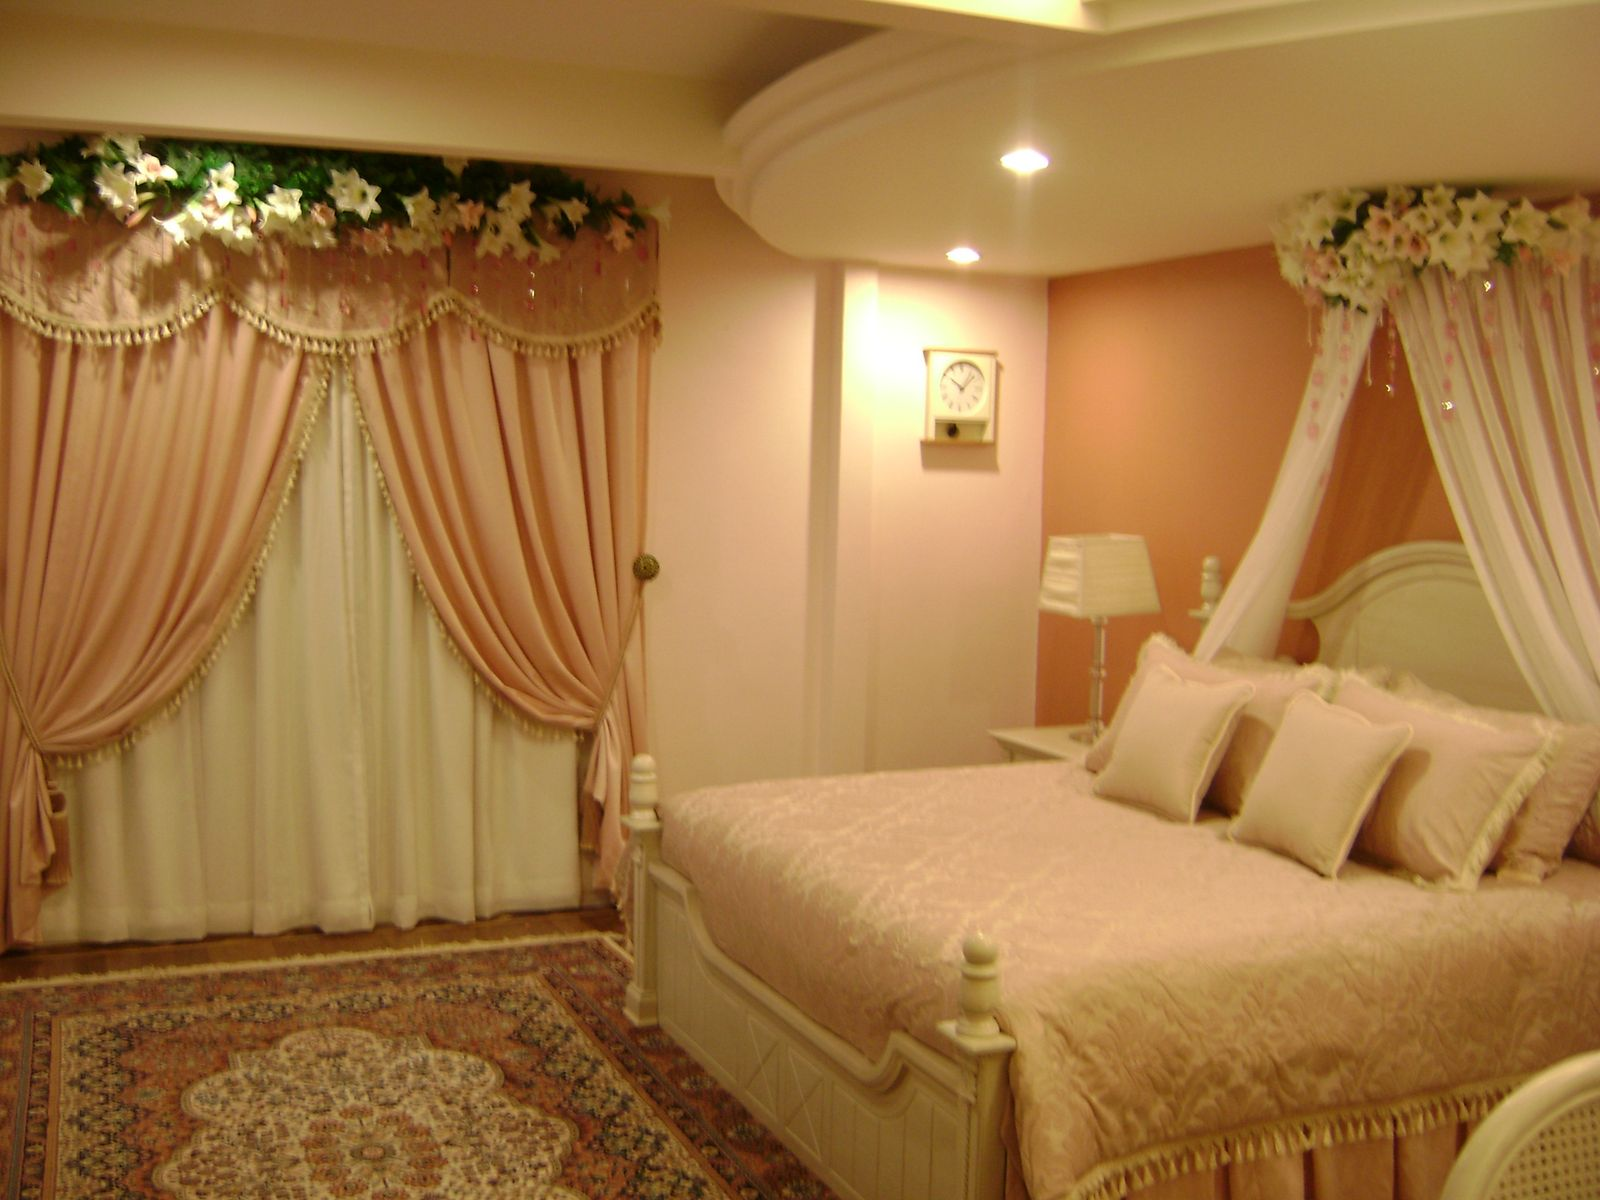 Girlsvilla wedding room decoration Decoration for wedding room